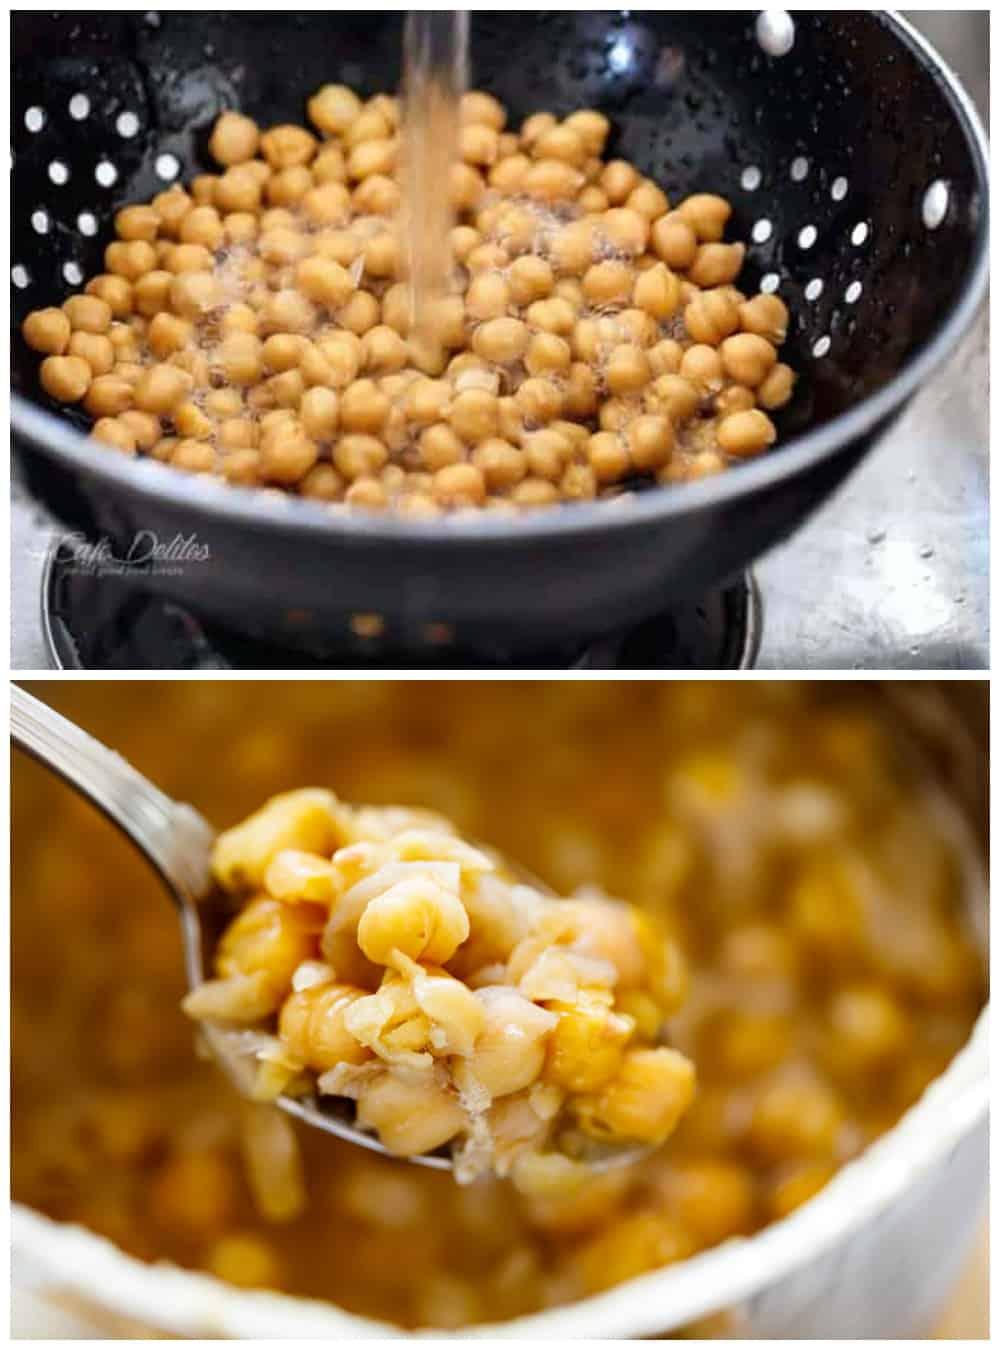 How to make hummus in a collage. Top image: washing chickpeas in a black strainer under cold running water. Bottom image: A spoon holding boiled chickpeas softened, just above a blurred pot full of boiled chickpeas.